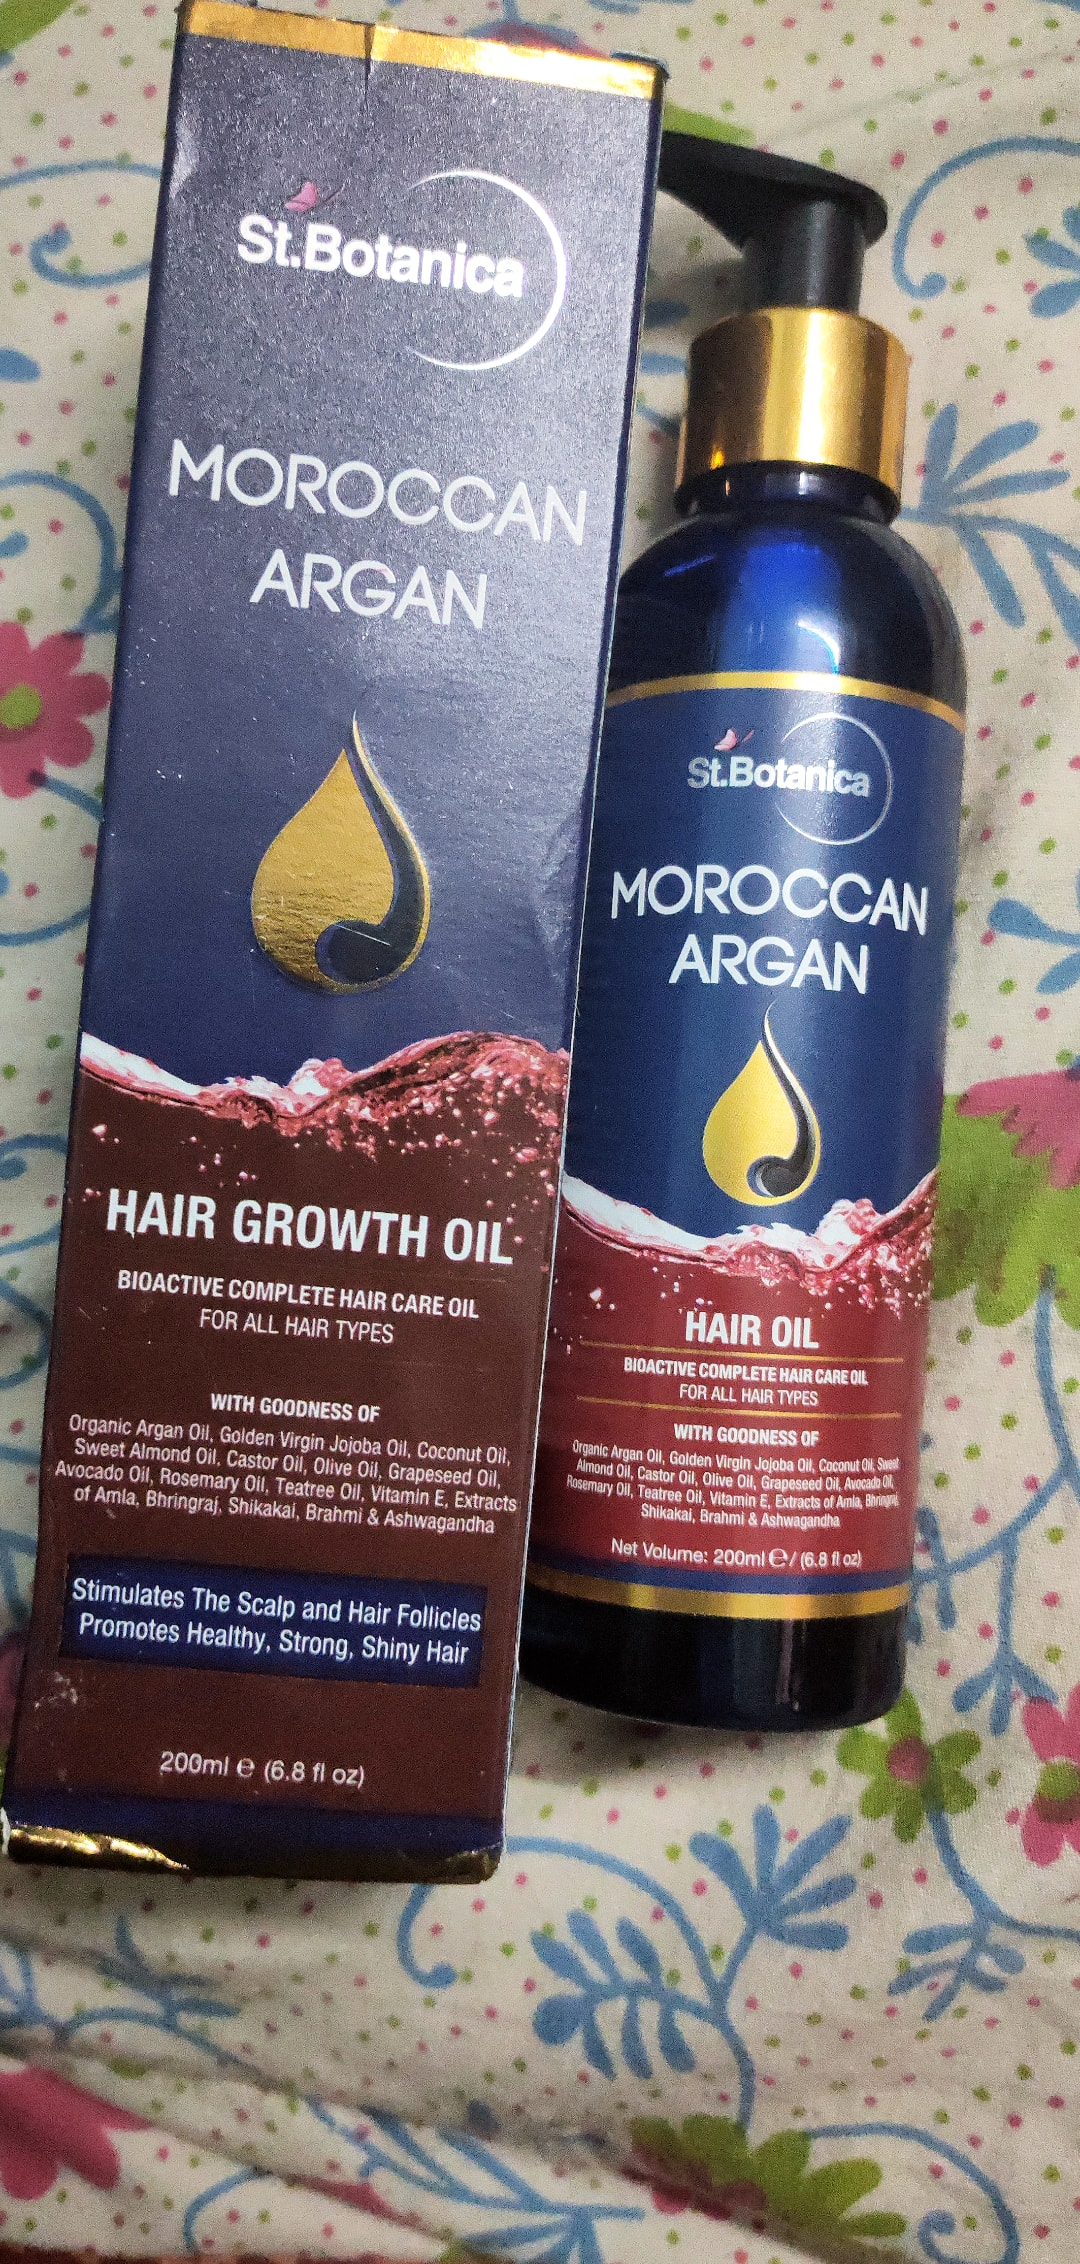 St.Botanica Moroccan Argan Hair Growth Oil pic 1-Best one-By radhika_kapoor